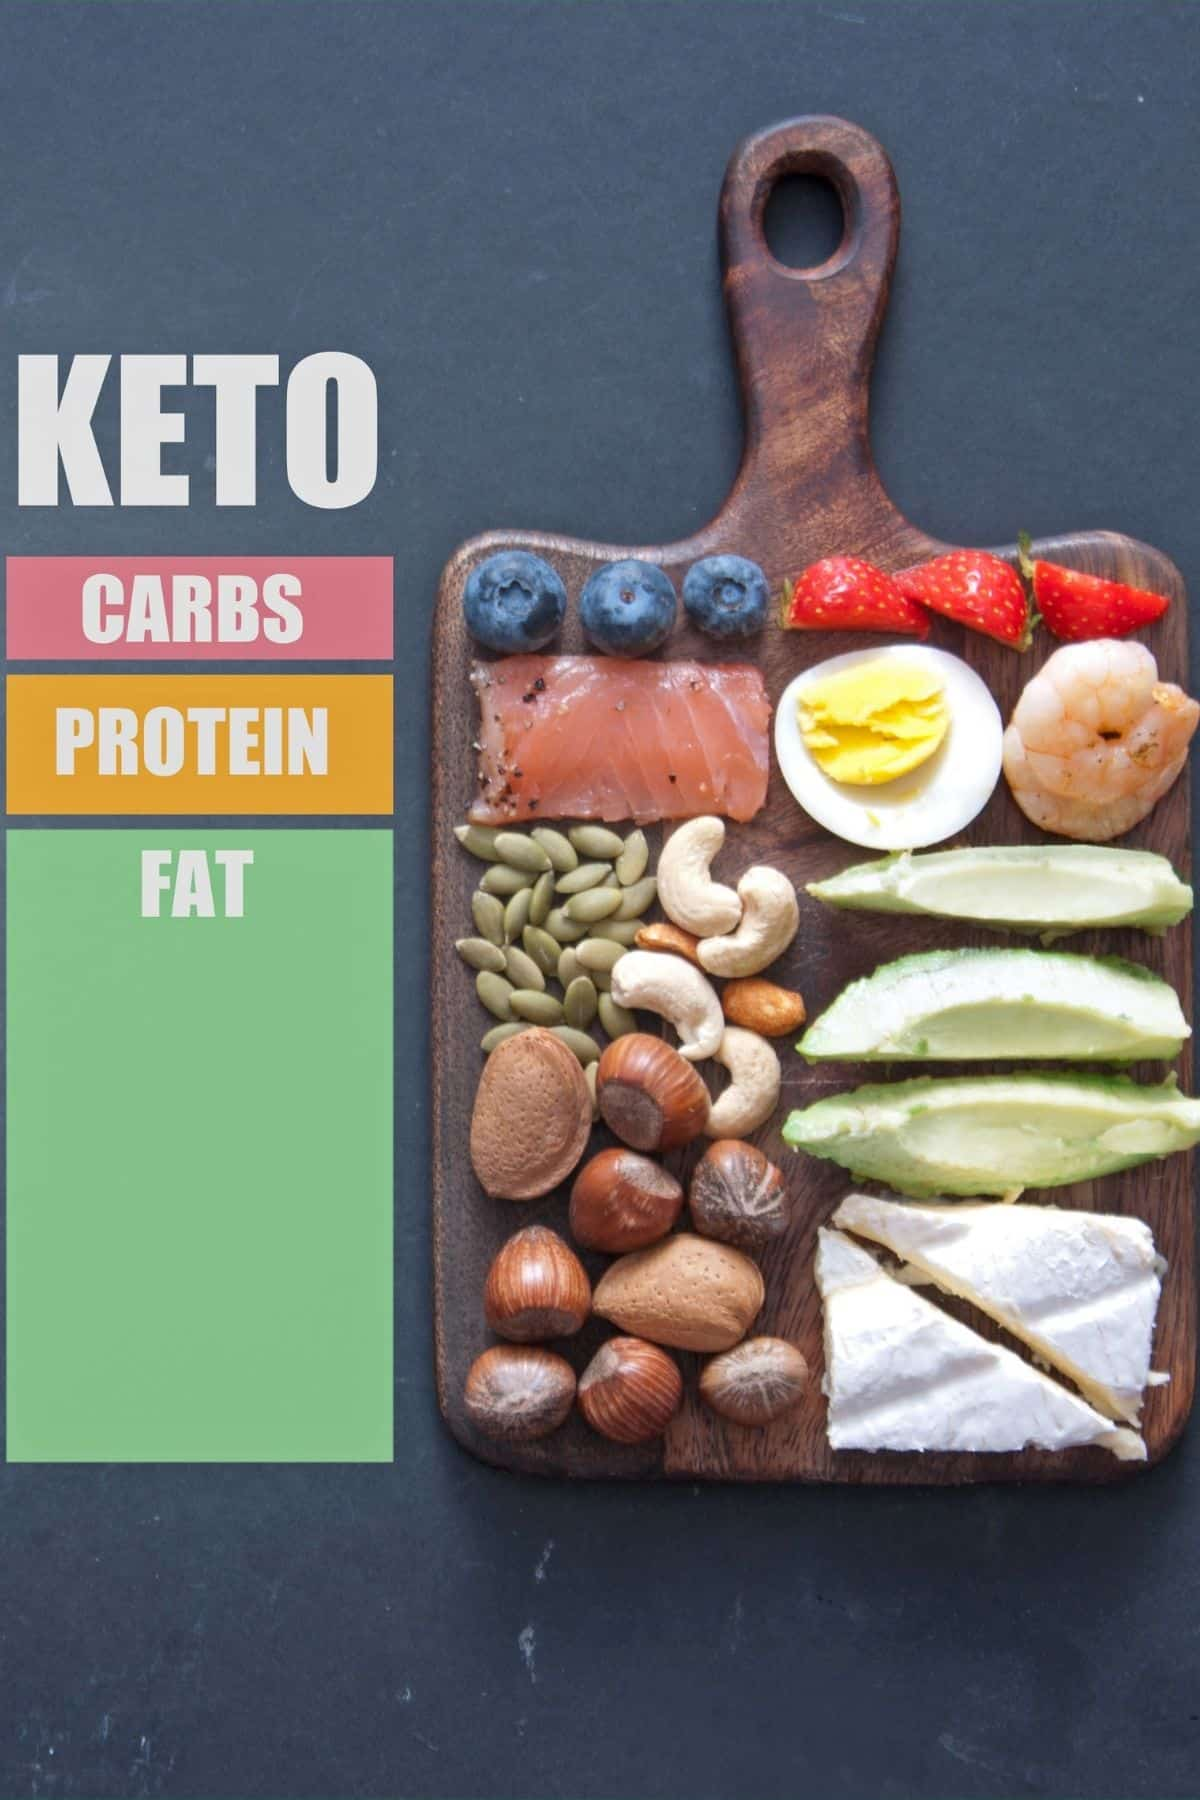 graph showing the breakdown of carbs, protein, and fat on a keto diet